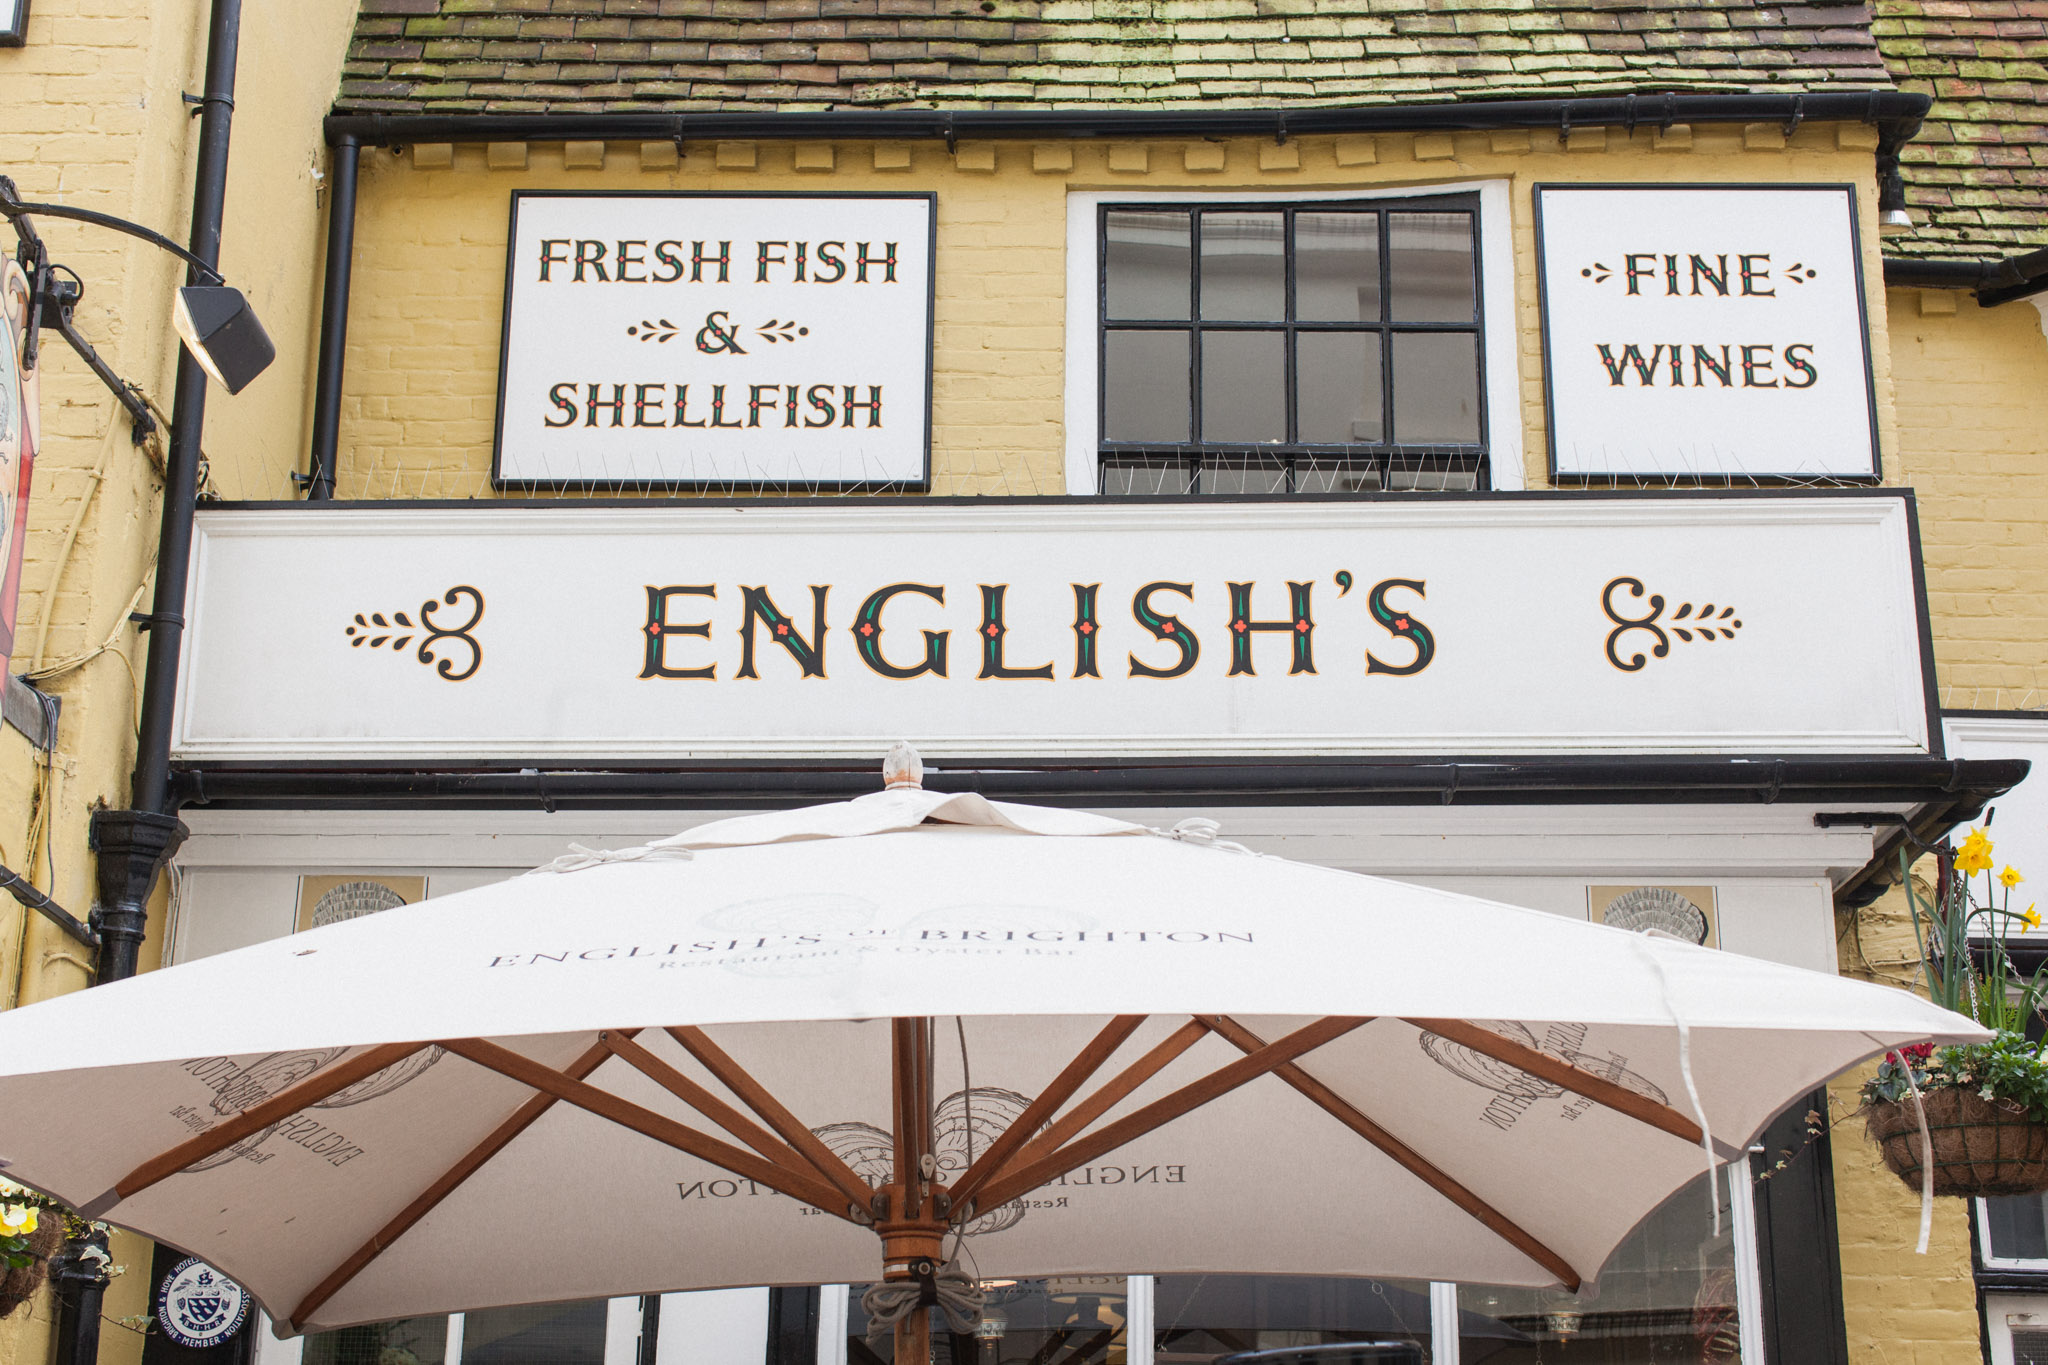 English's Brighton - traditional seafood restaurant. Photography by Brighton and London photographer Emma Gutteridge